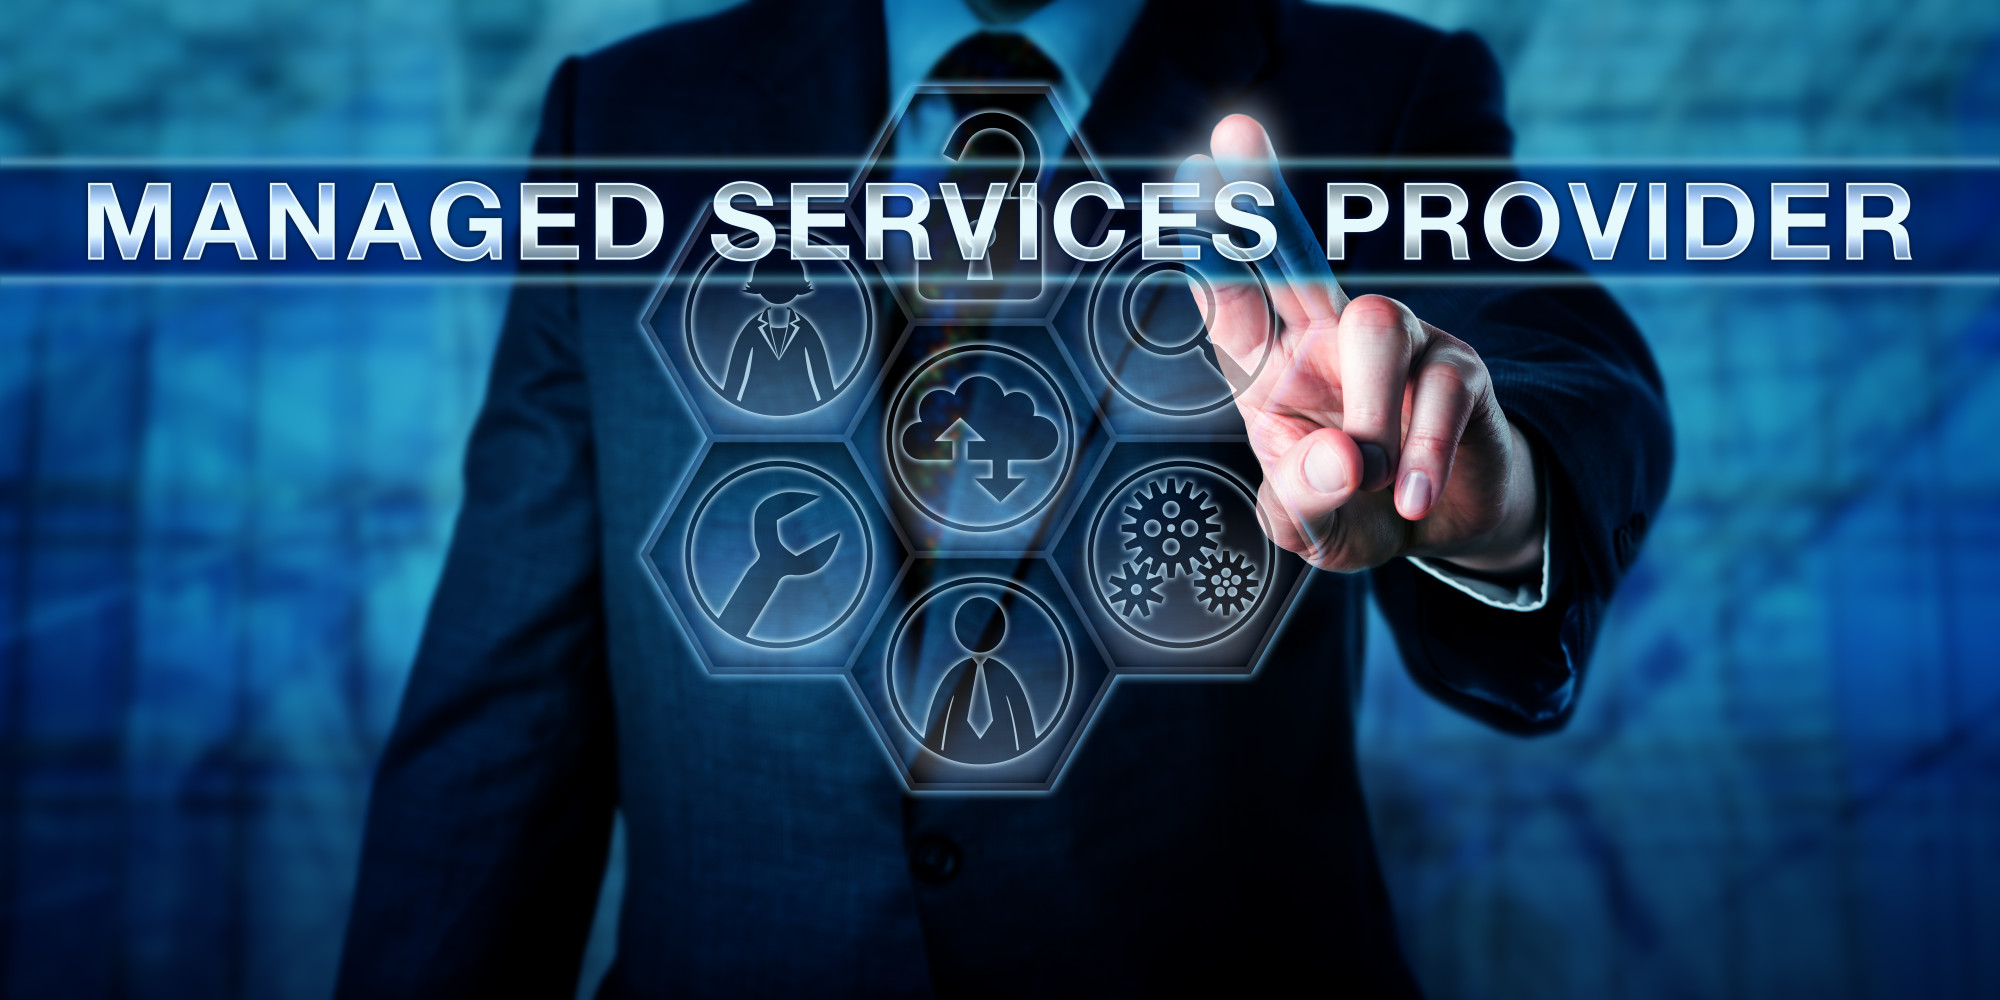 7 Ways to Decide on the Best Managed Service Provider